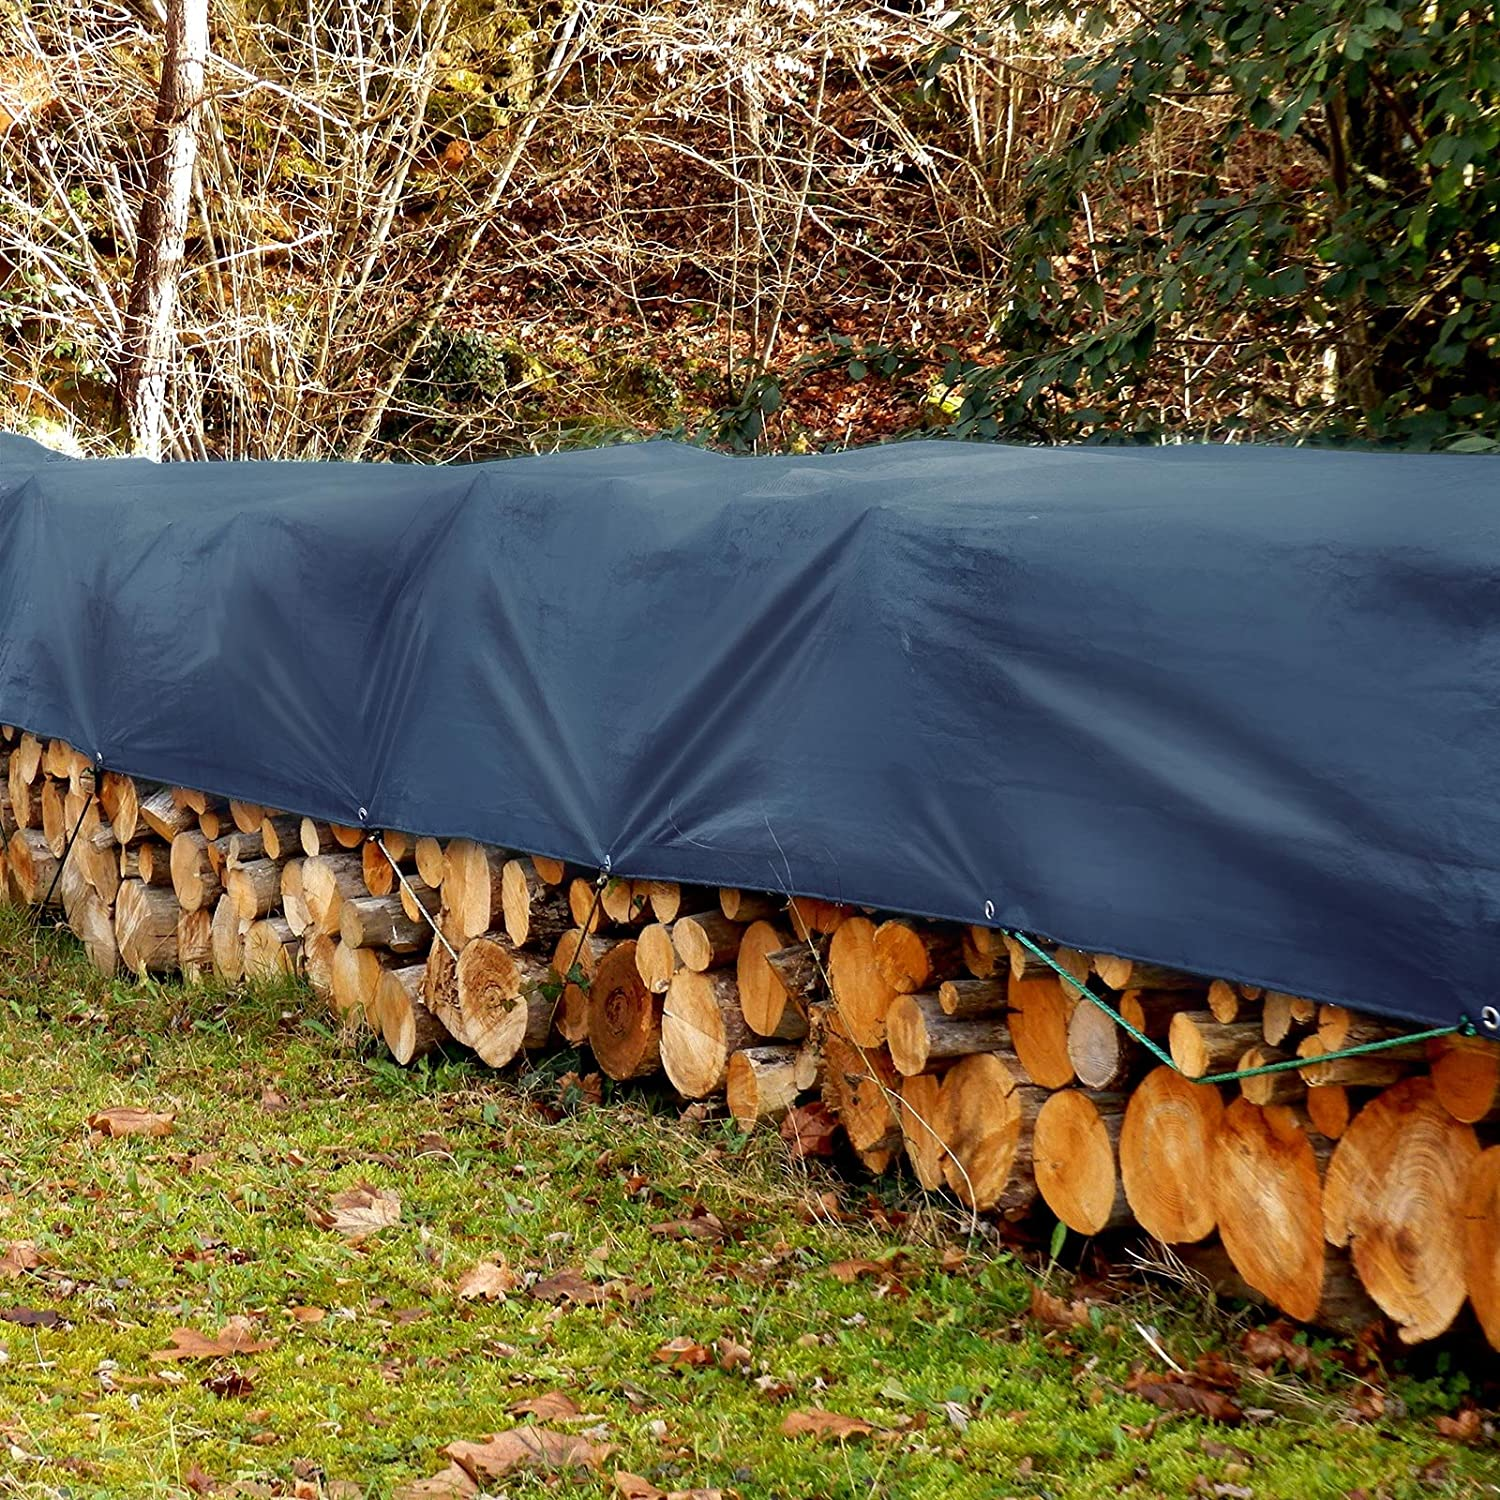 Blue Ground Tent Trailer Cover 6 oz//Sq Yd Large Tarpaulin in Multiple Sizes Tarps Medium Duty Waterproof 8 x 10 casa pura 4058171264550